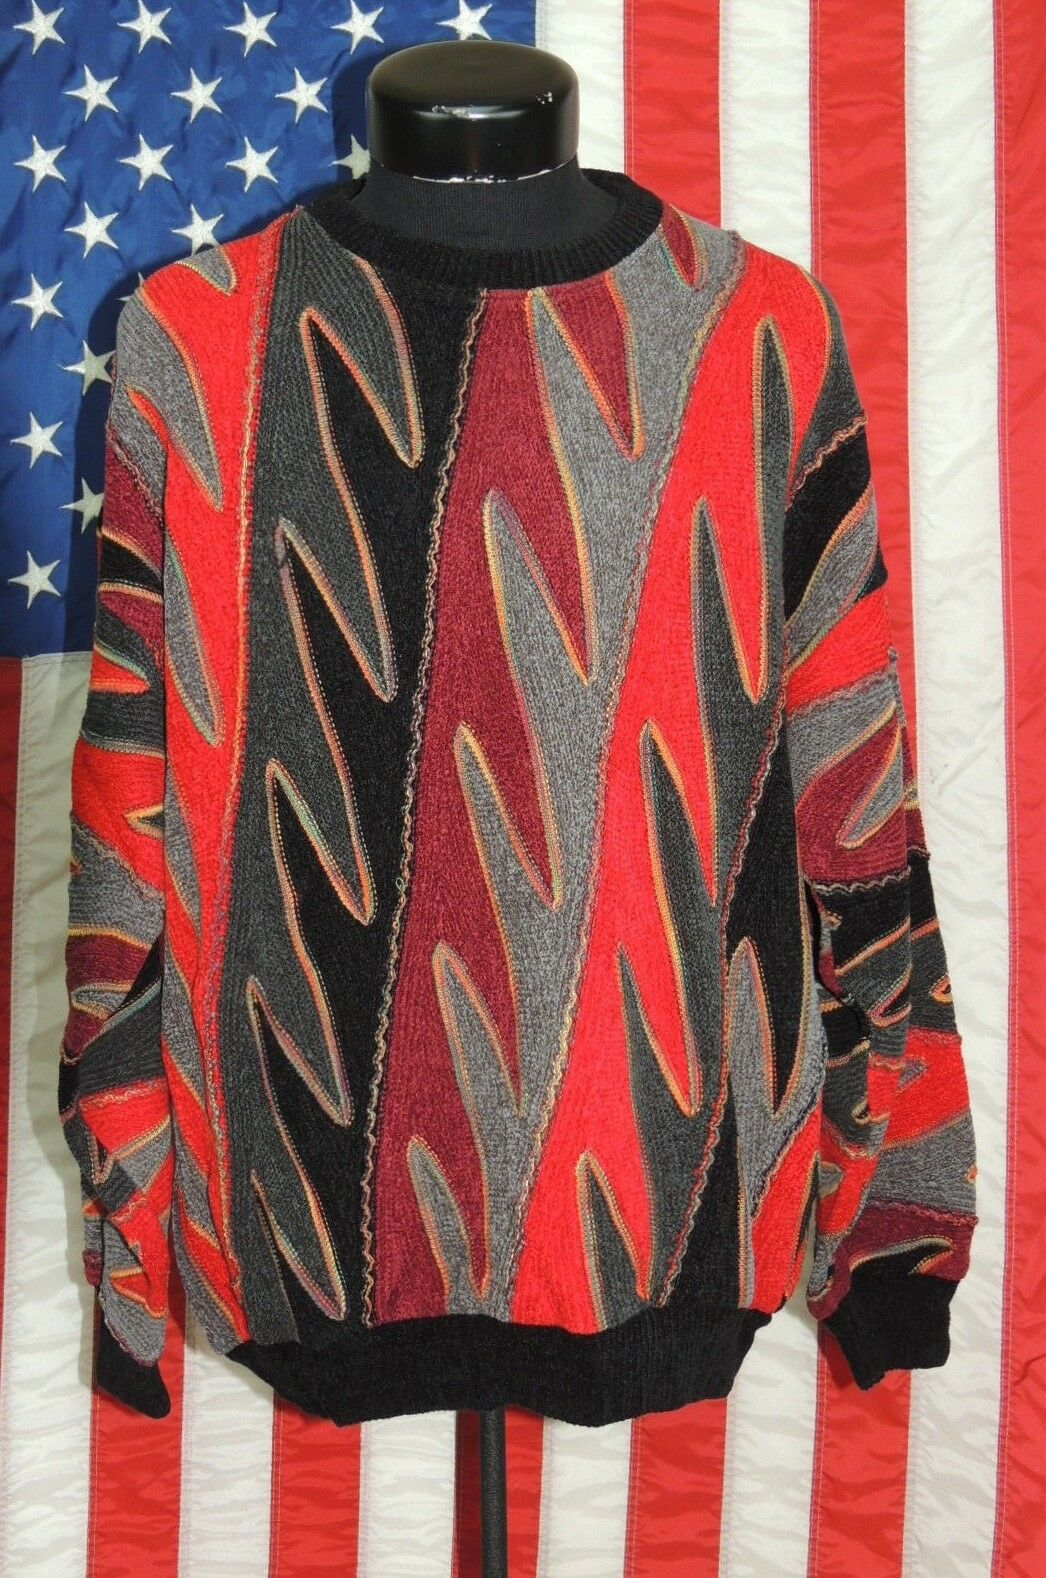 VTG Tundra Canada 3D Bill Cosby Biggie Smalls Med Abstract Sweater Hip-Hop Ugly